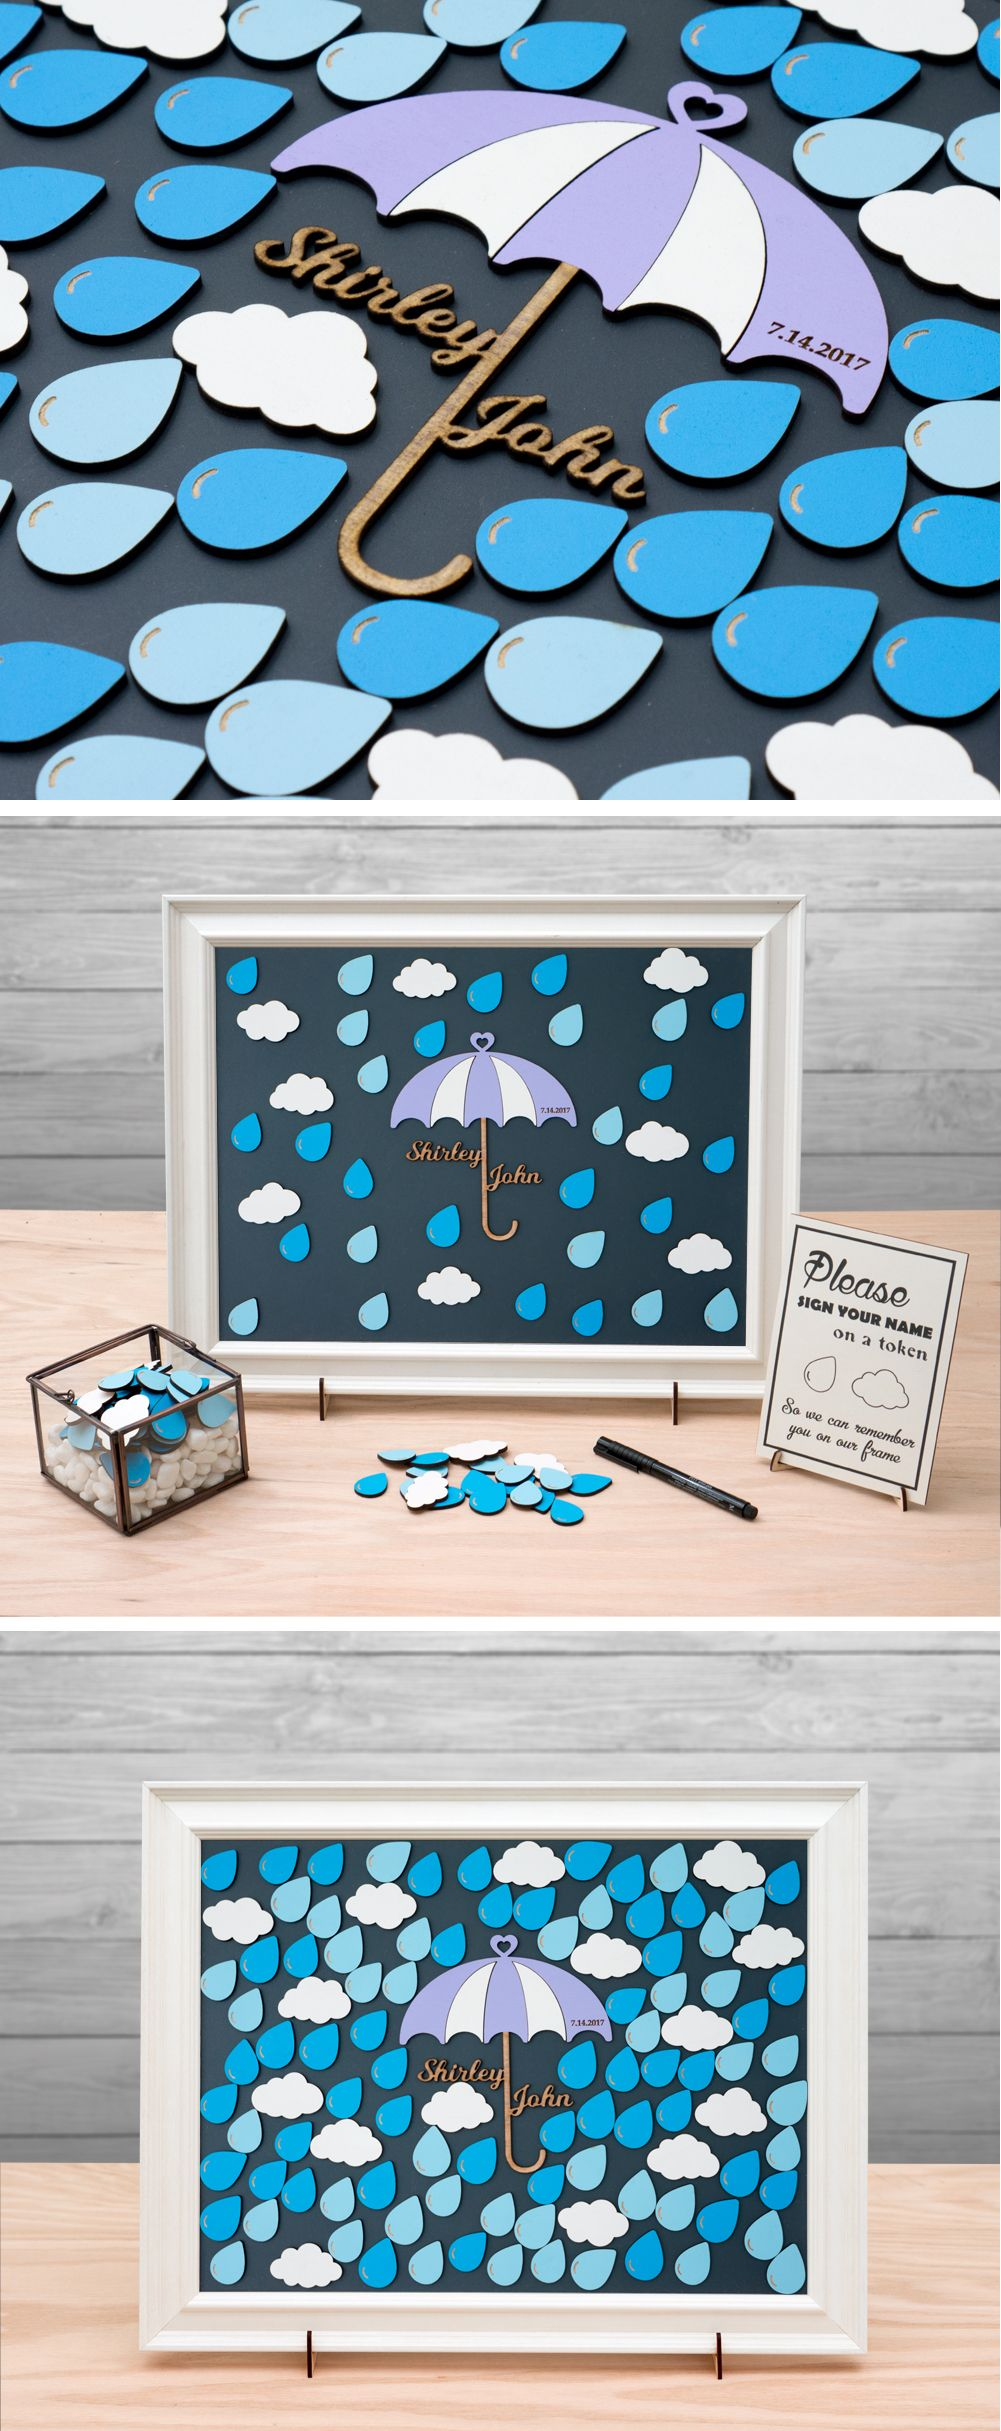 Weather Theme, Rain Drops, Shower, Sprinkle Umbrella Guest Book Alternative/ Customizable Unique Sign In Guest Book Frame by TokenGram